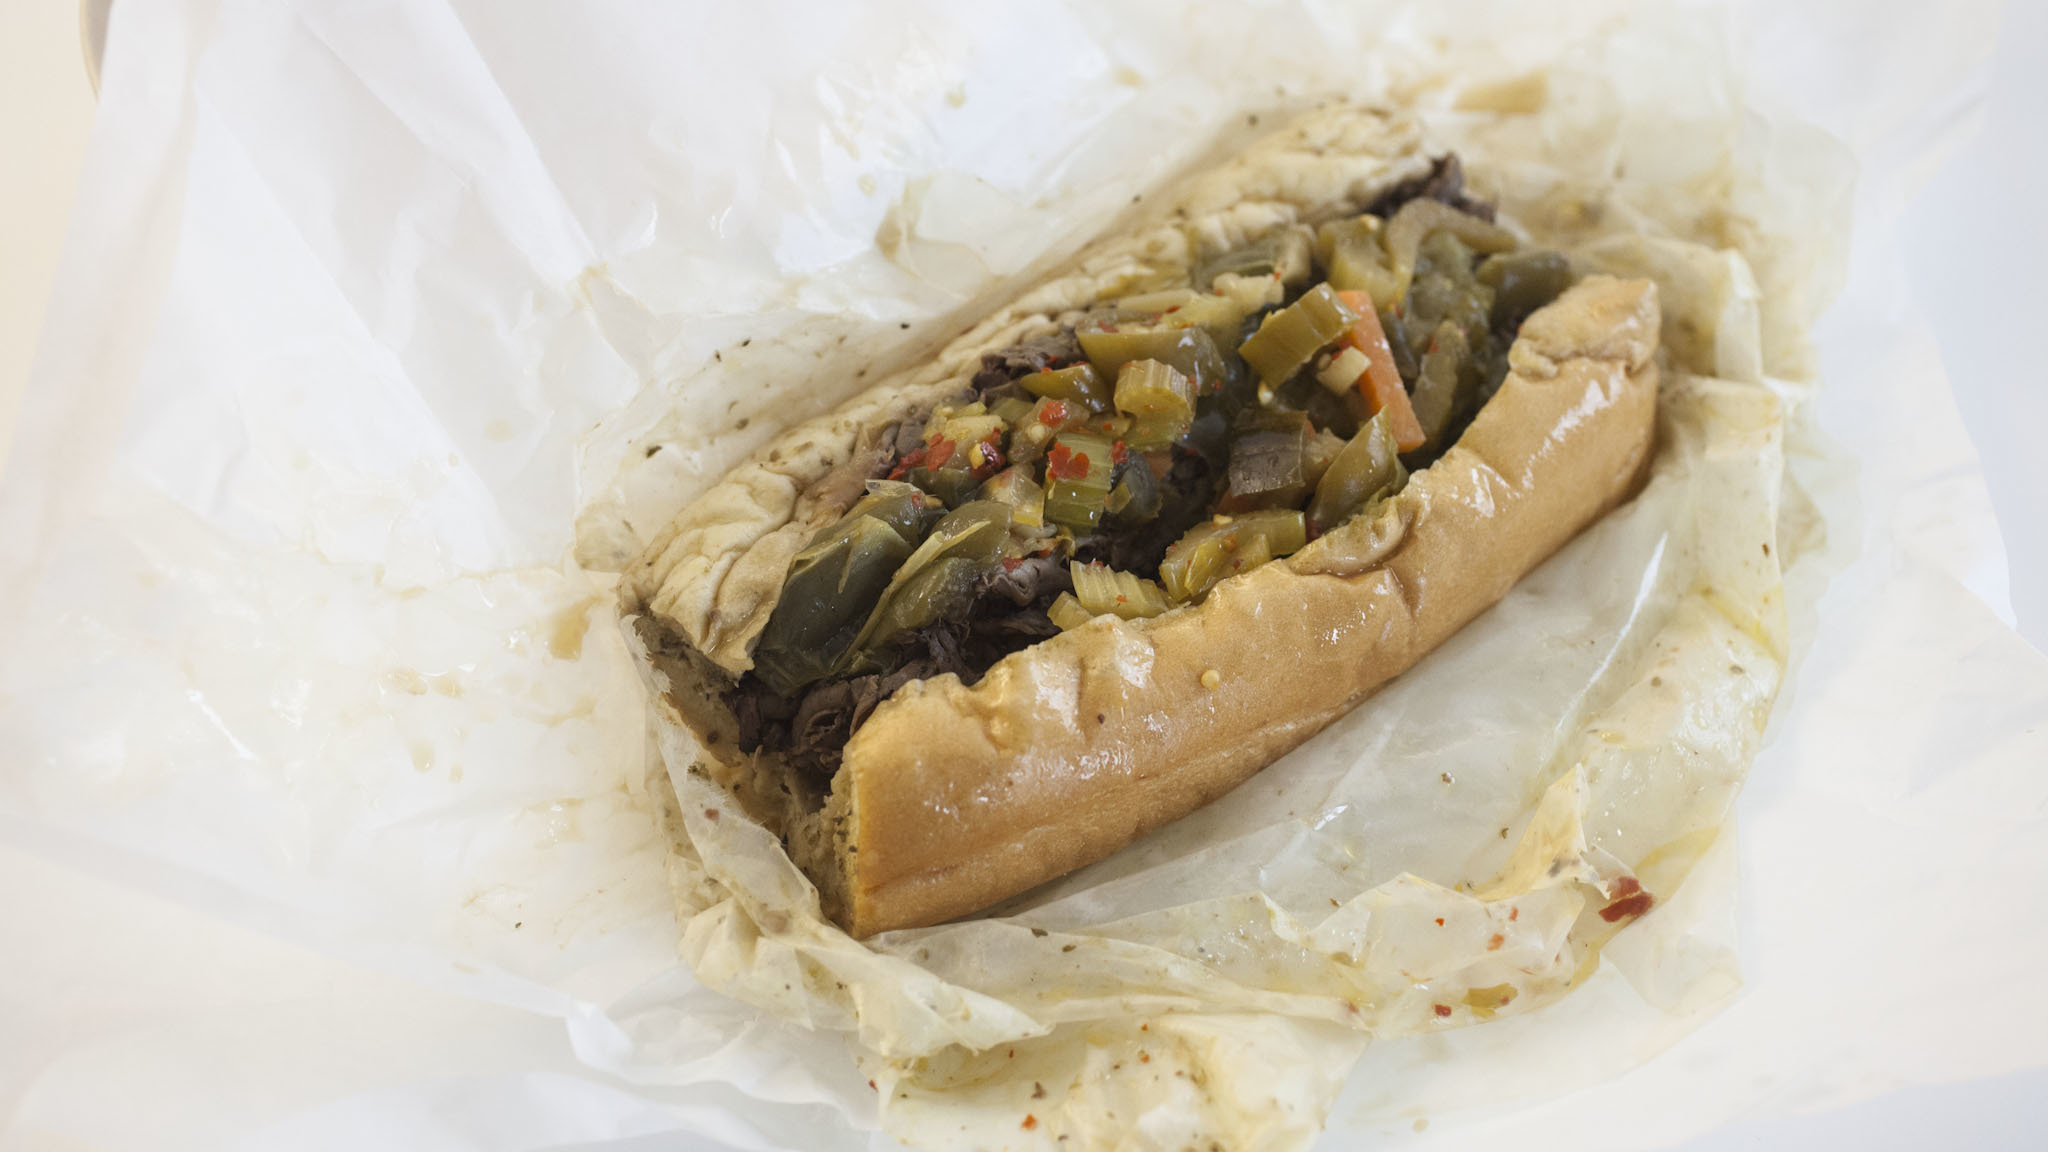 16 things Chicagoans do that are absolutely disgusting